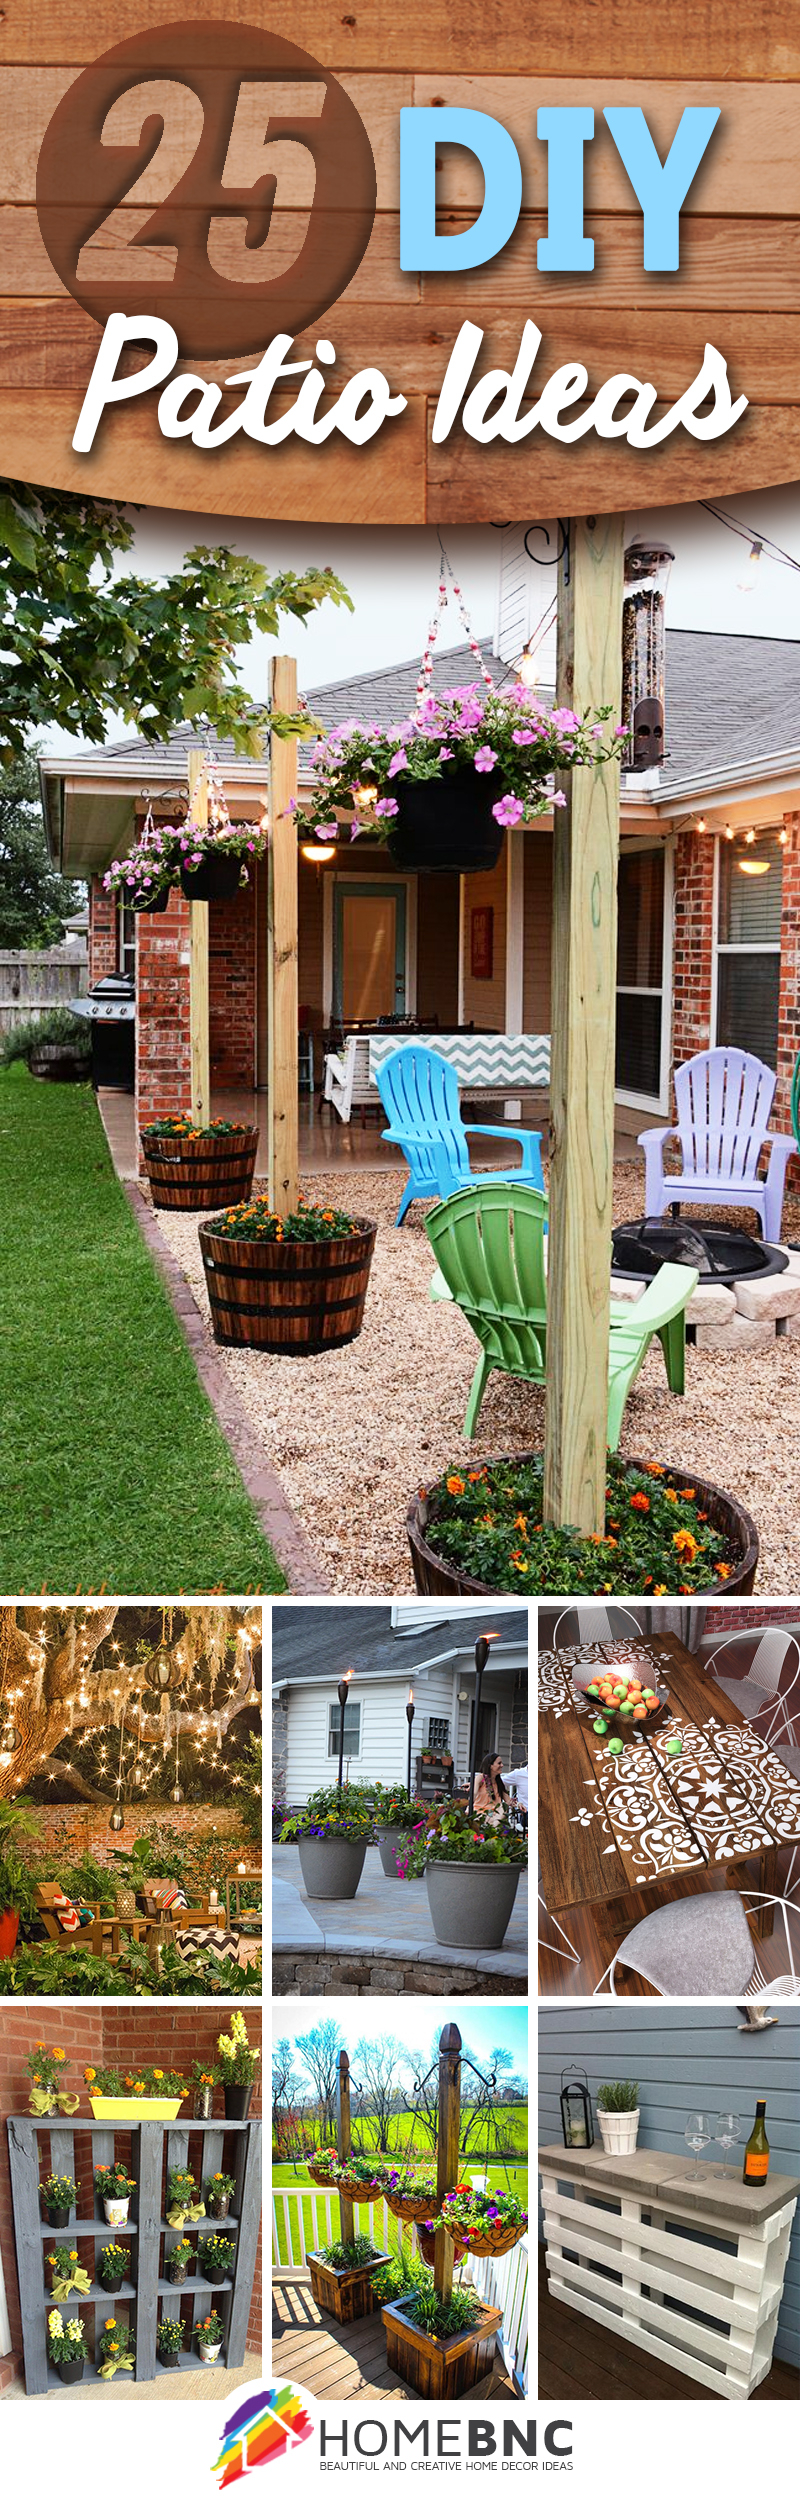 25 Best Diy Patio Decoration Ideas And Designs For 2019 regarding 16 Awesome Concepts of How to Make Backyard Decorating Ideas Home